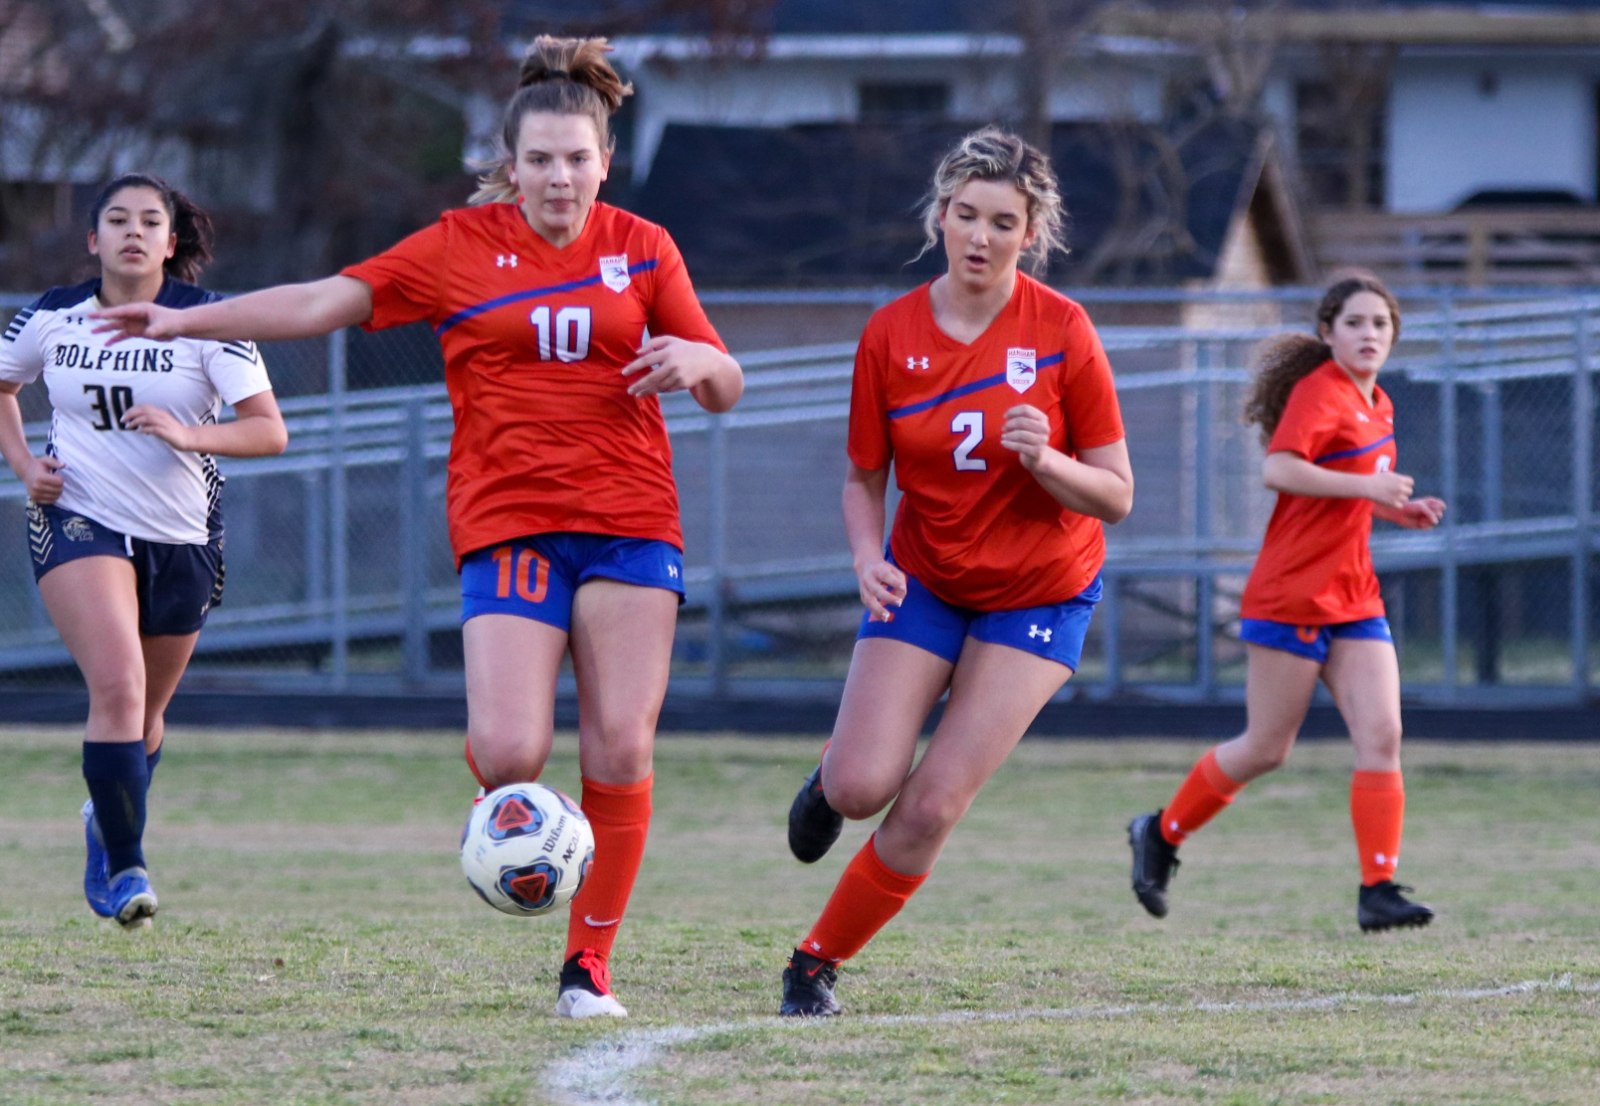 3.9.2021 (PHOTO GALLERY): Hanahan Varsity Girls Soccer vs Battery Creek HS – Photos by Cyril Samonte